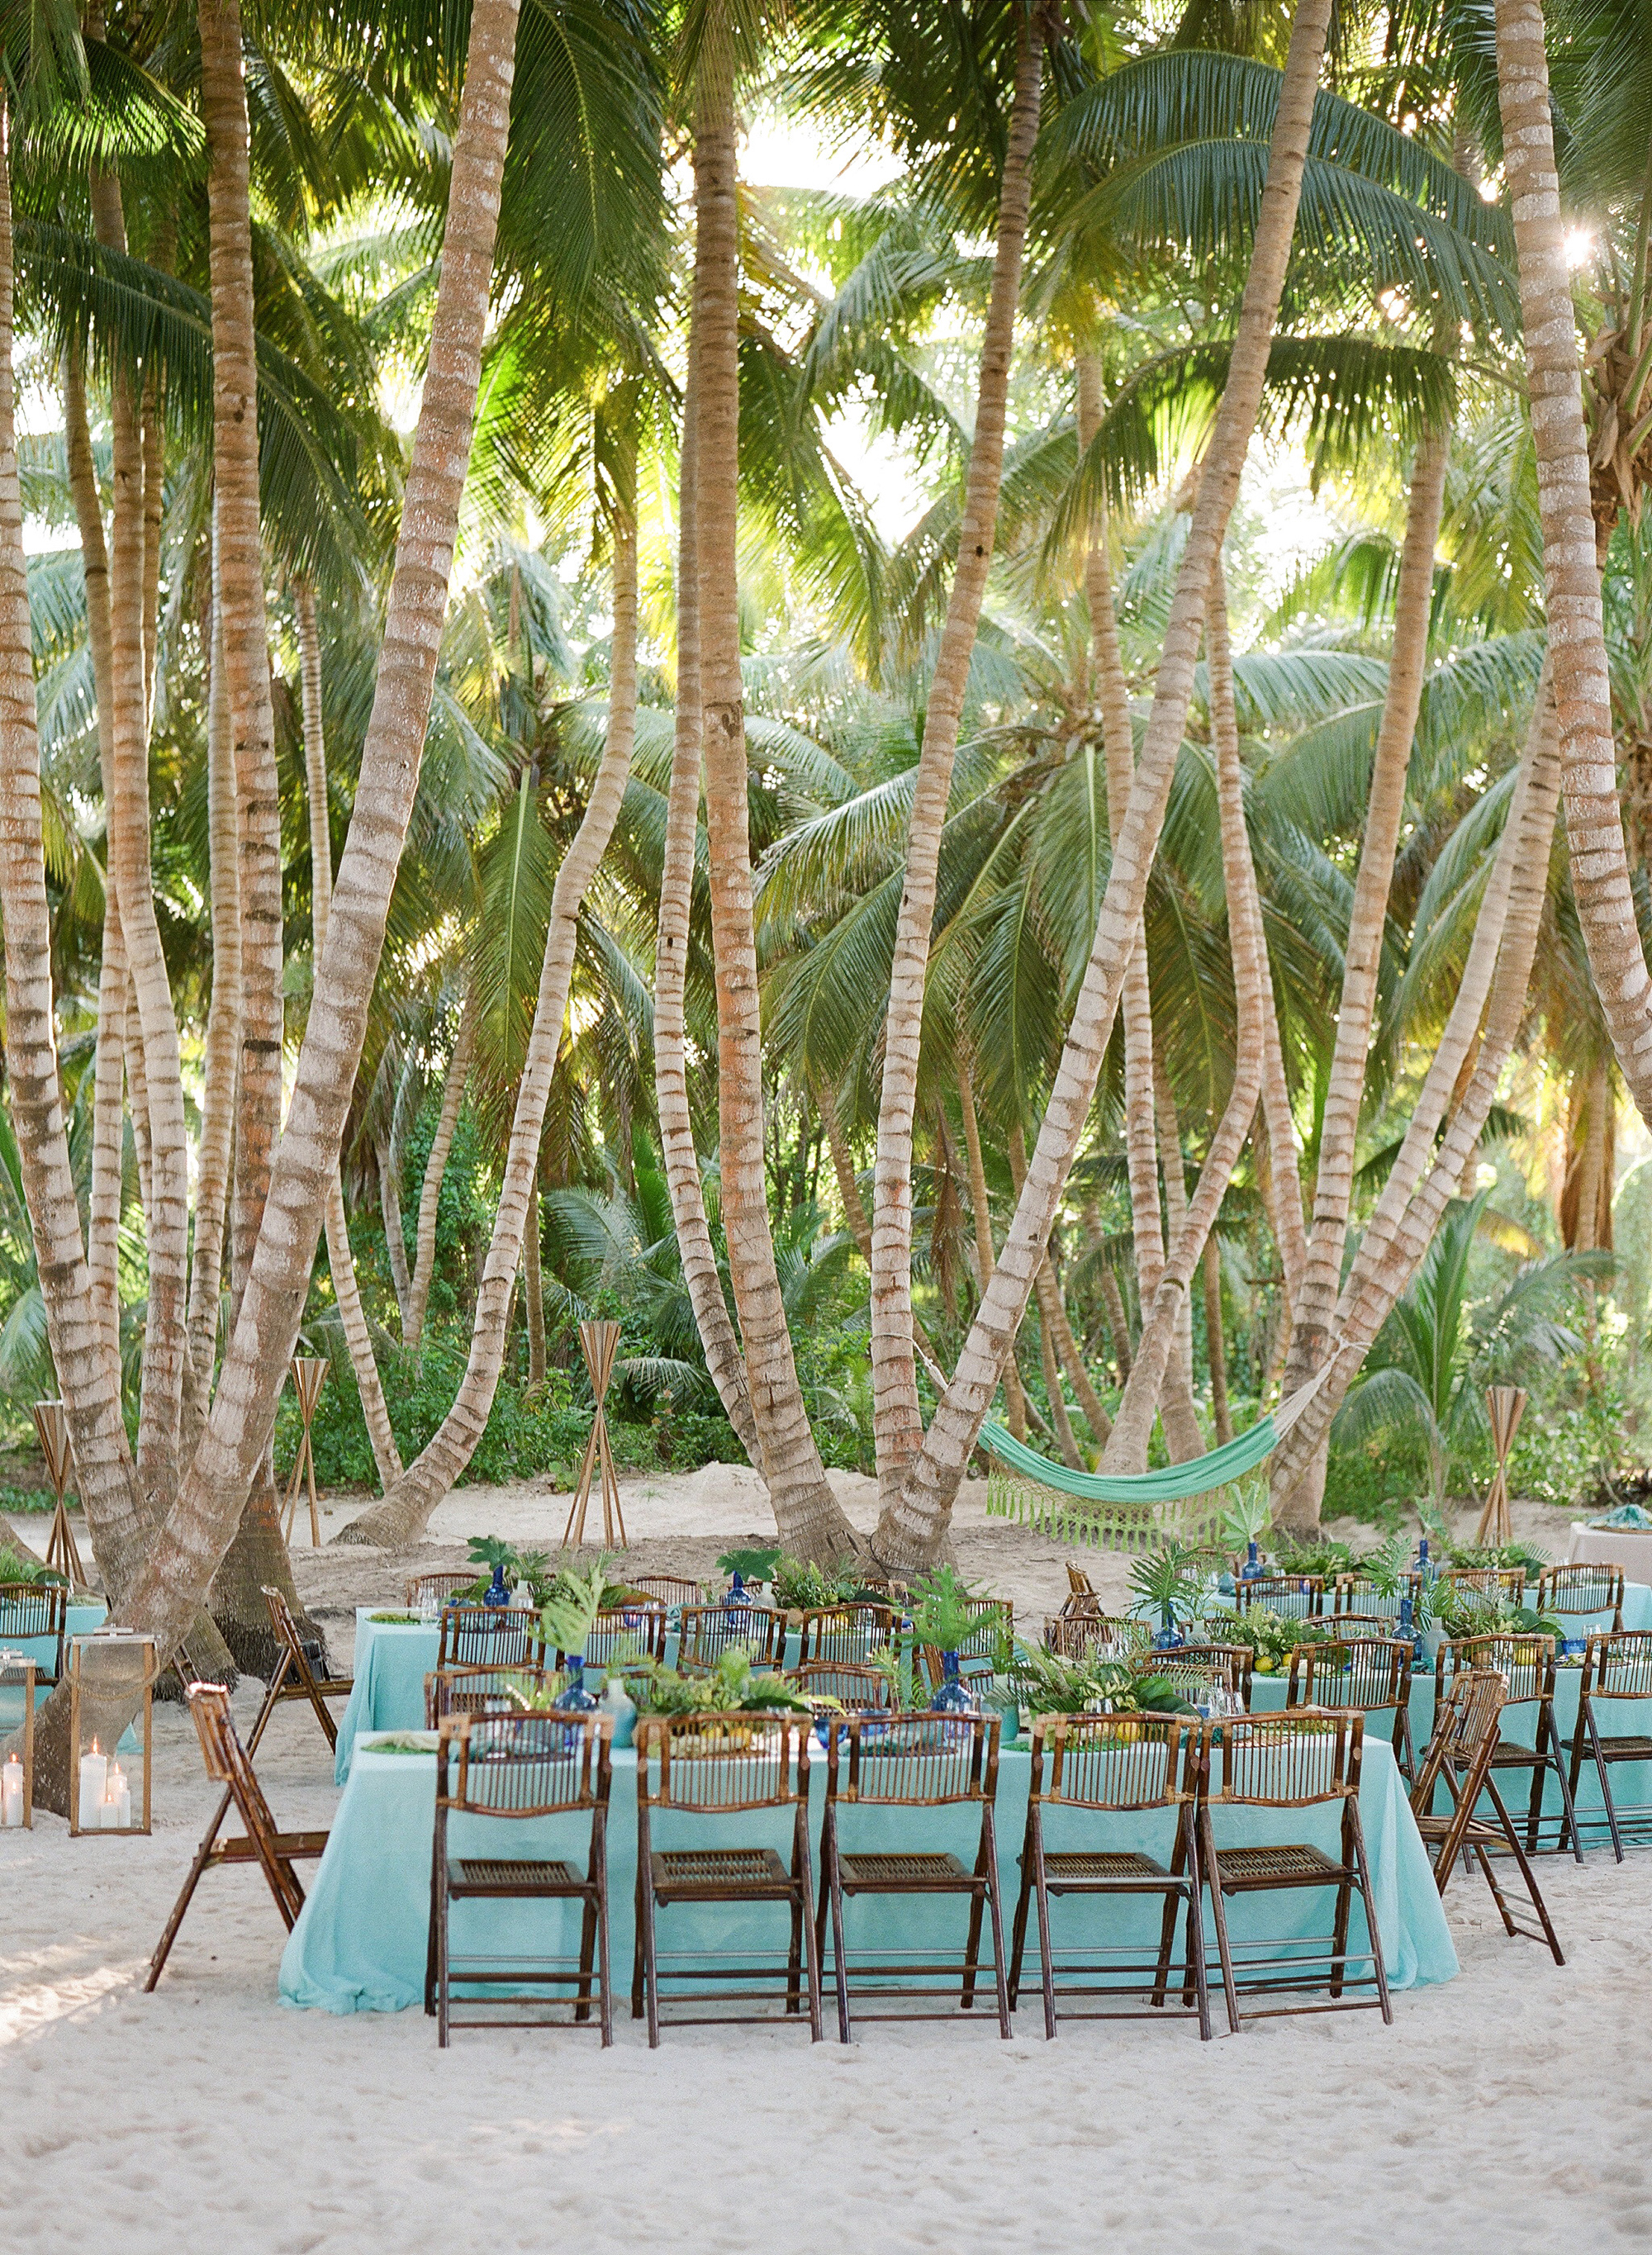 Dinner Among the Palm Trees